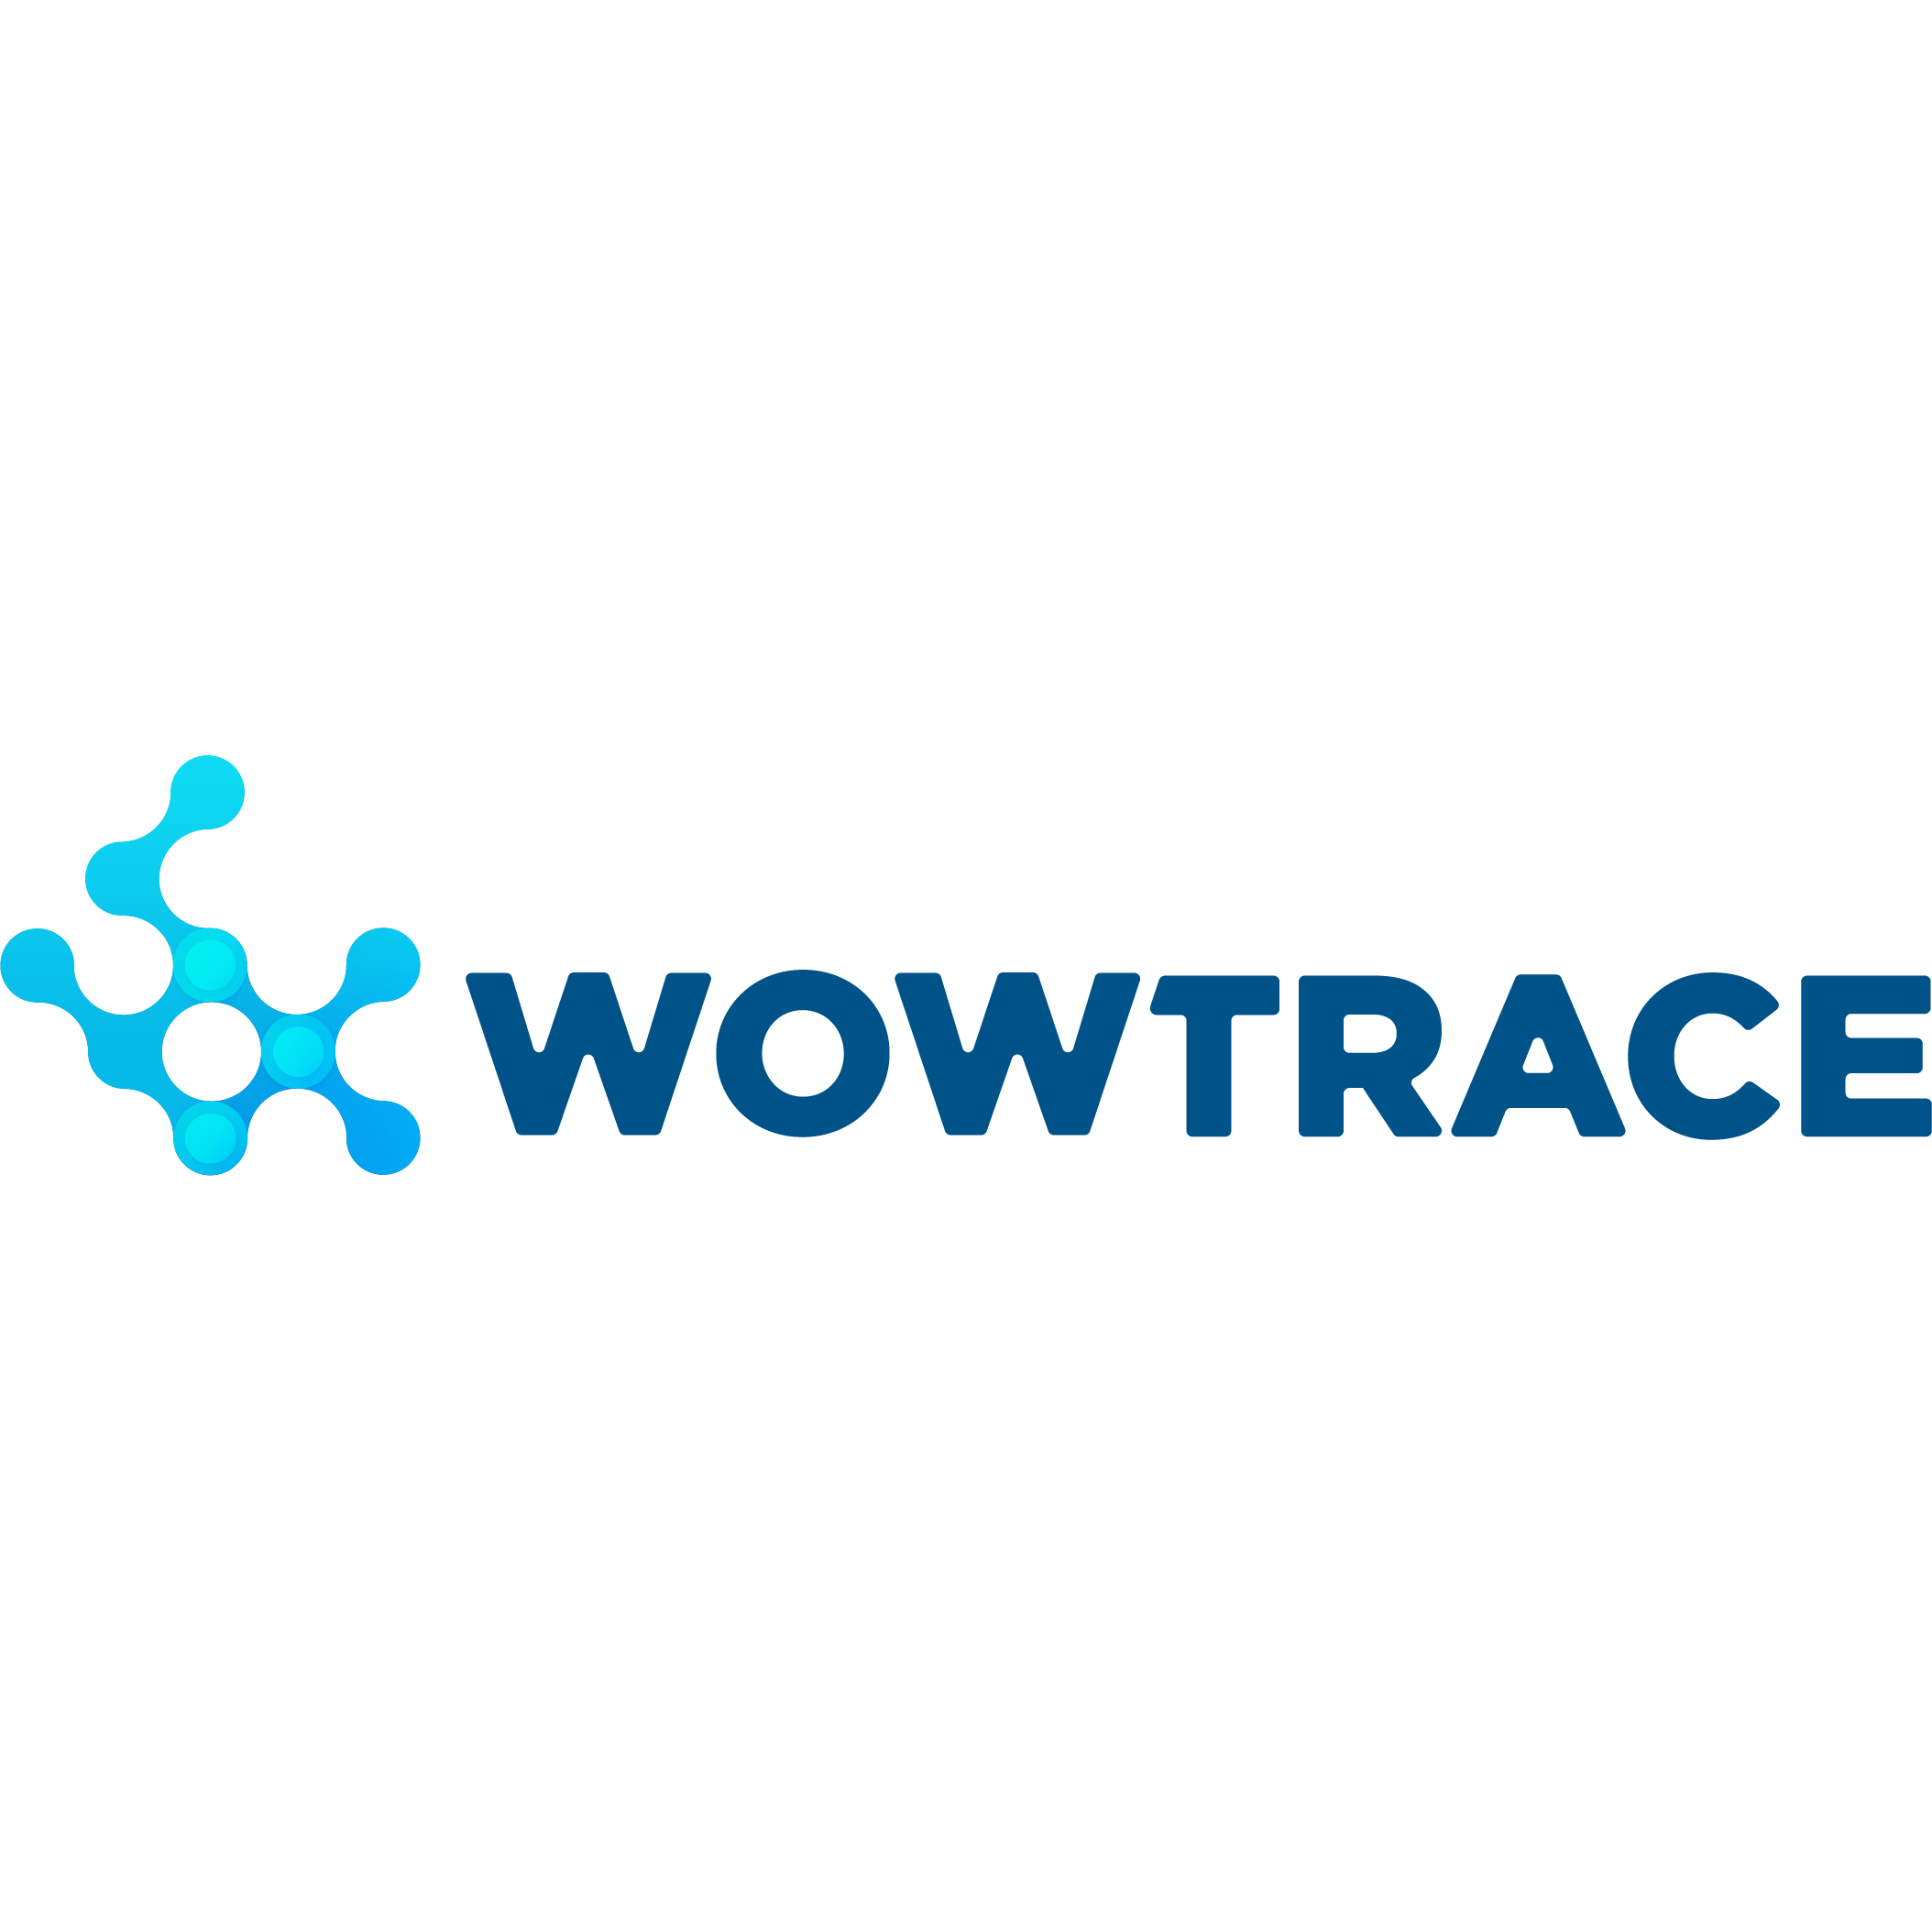 4062, 4062, wowtrace-logo, wowtrace-logo-1.png, 74529, https://www.blockchainlabs.asia/wp-content/uploads/2018/07/wowtrace-logo-1.png, https://www.blockchainlabs.asia/project/wowtrace/wowtrace-logo-2/, , 16, , , wowtrace-logo-2, inherit, 3397, 2019-05-03 08:34:23, 2019-05-03 08:34:23, 0, image/png, image, png, https://www.blockchainlabs.asia/wp-includes/images/media/default.png, 2108, 2108, Array